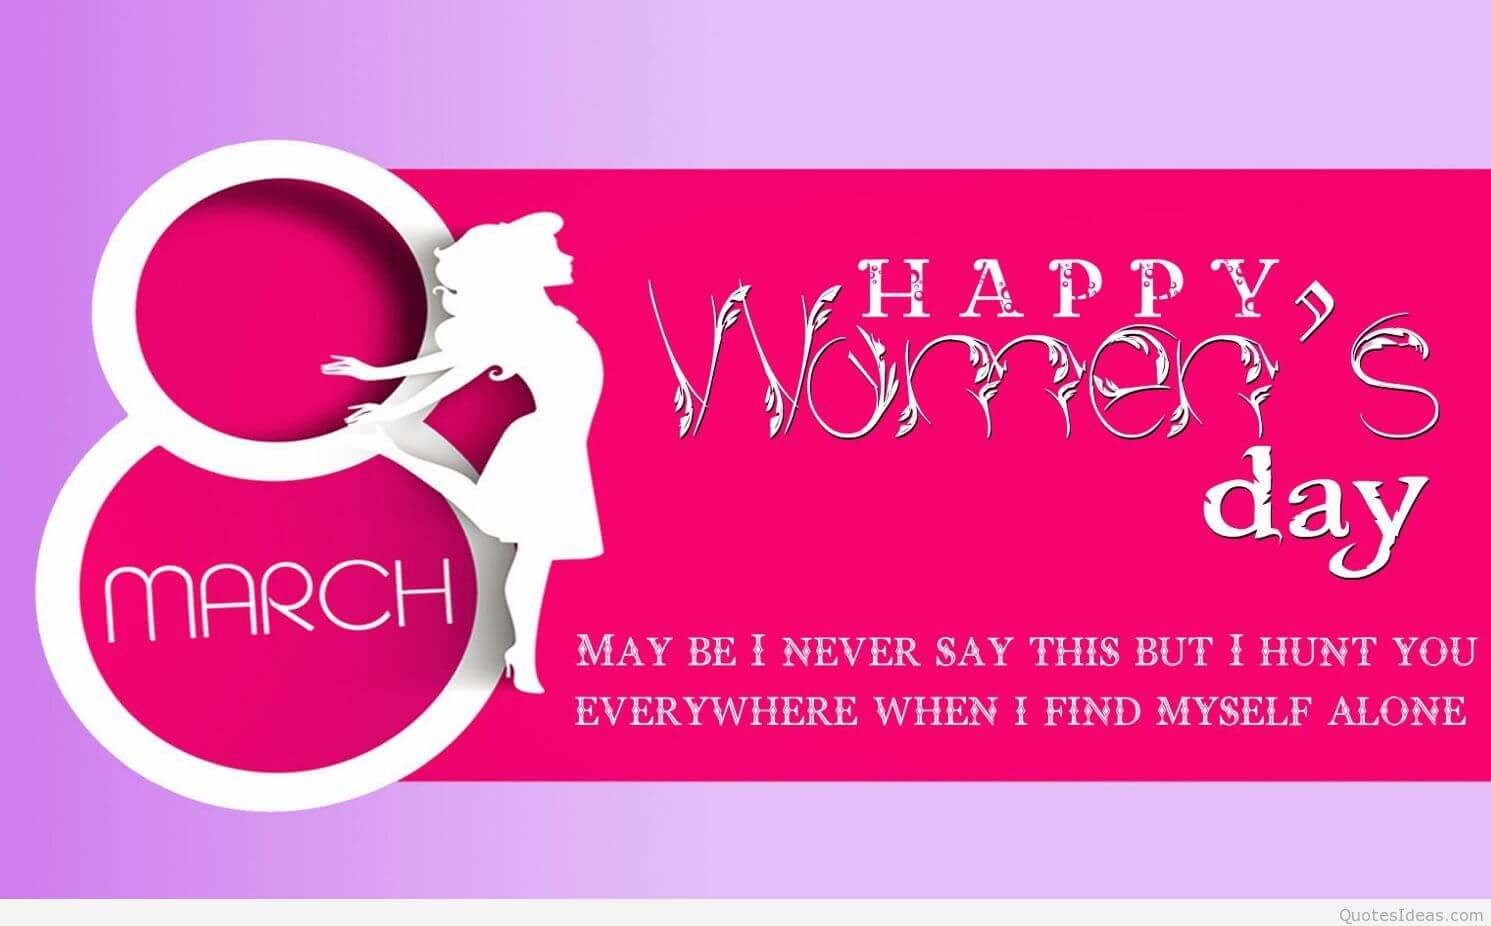 happy international womens day 8 march greetings wishes